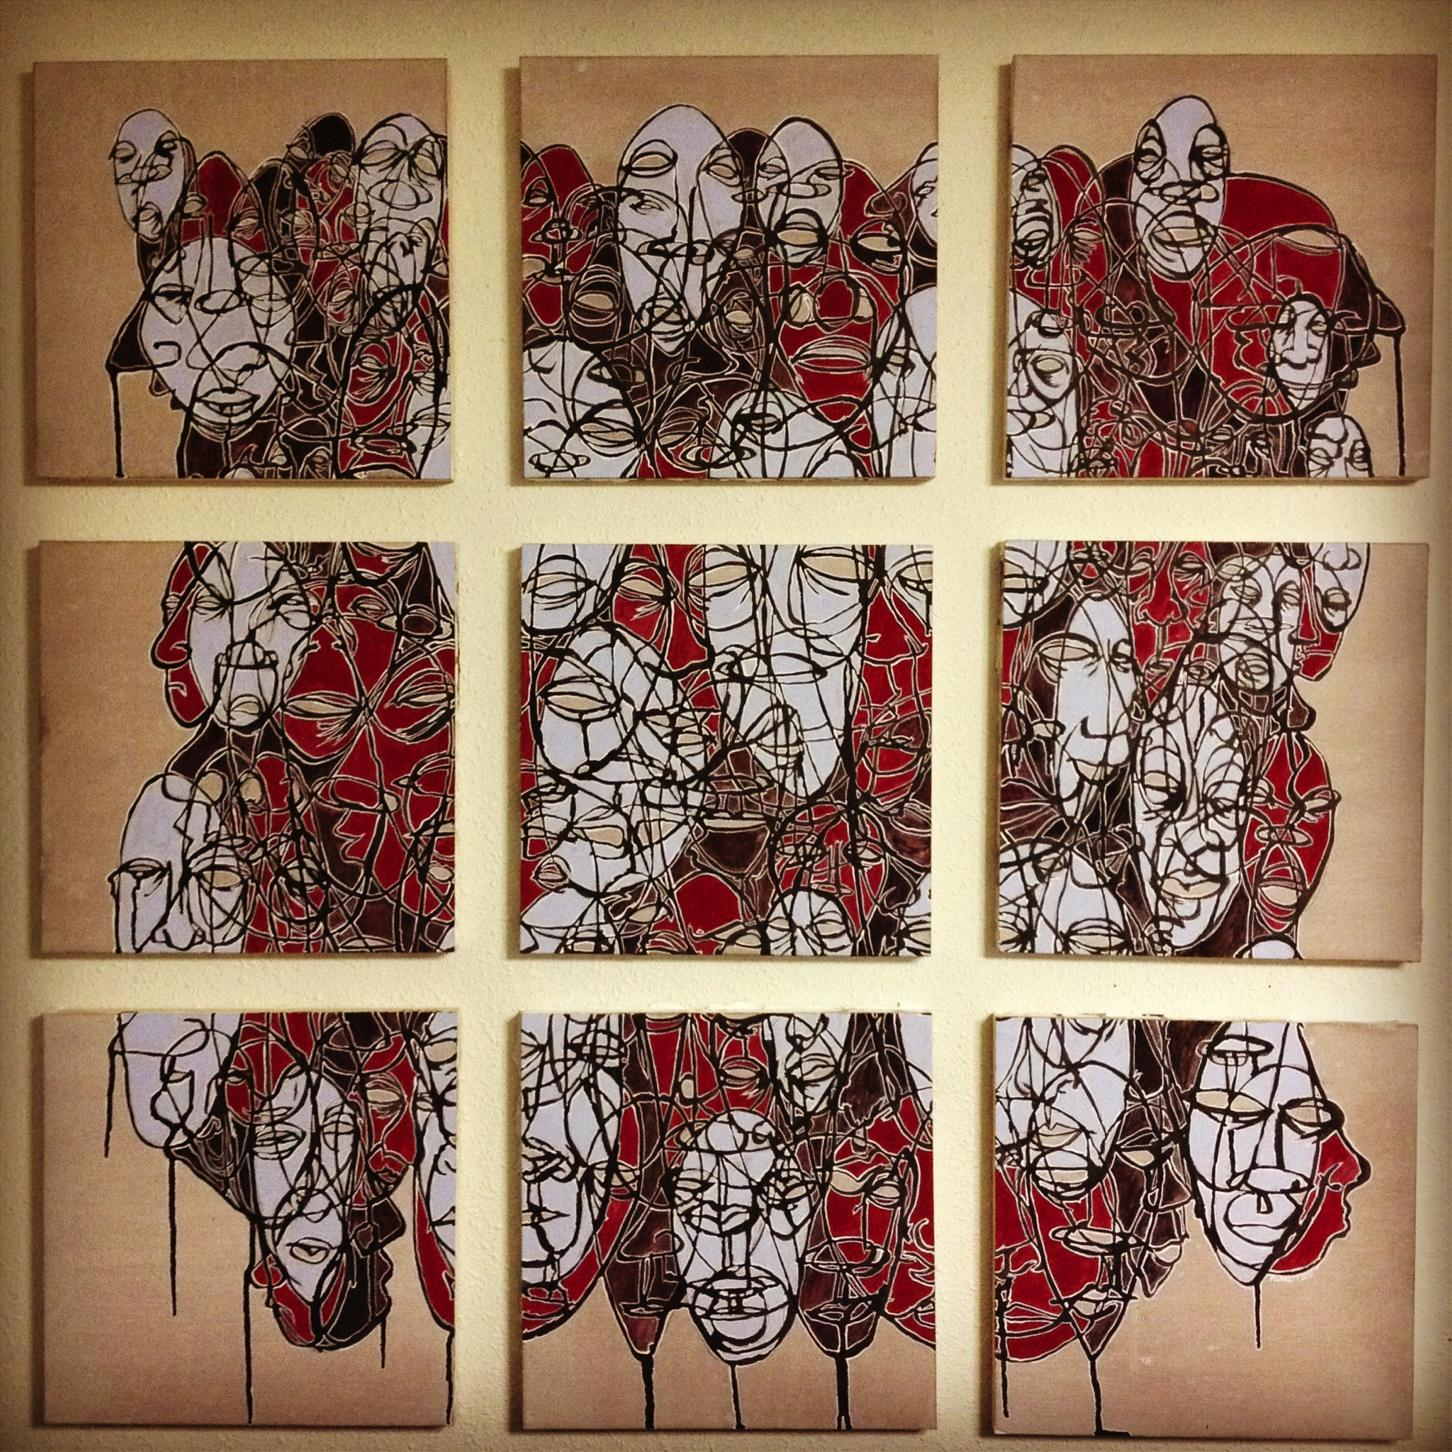 Untitled. December 2011 - January 2012. Nine 30 x 30 cm panels . Acrylic and ink on wood panel SOLD